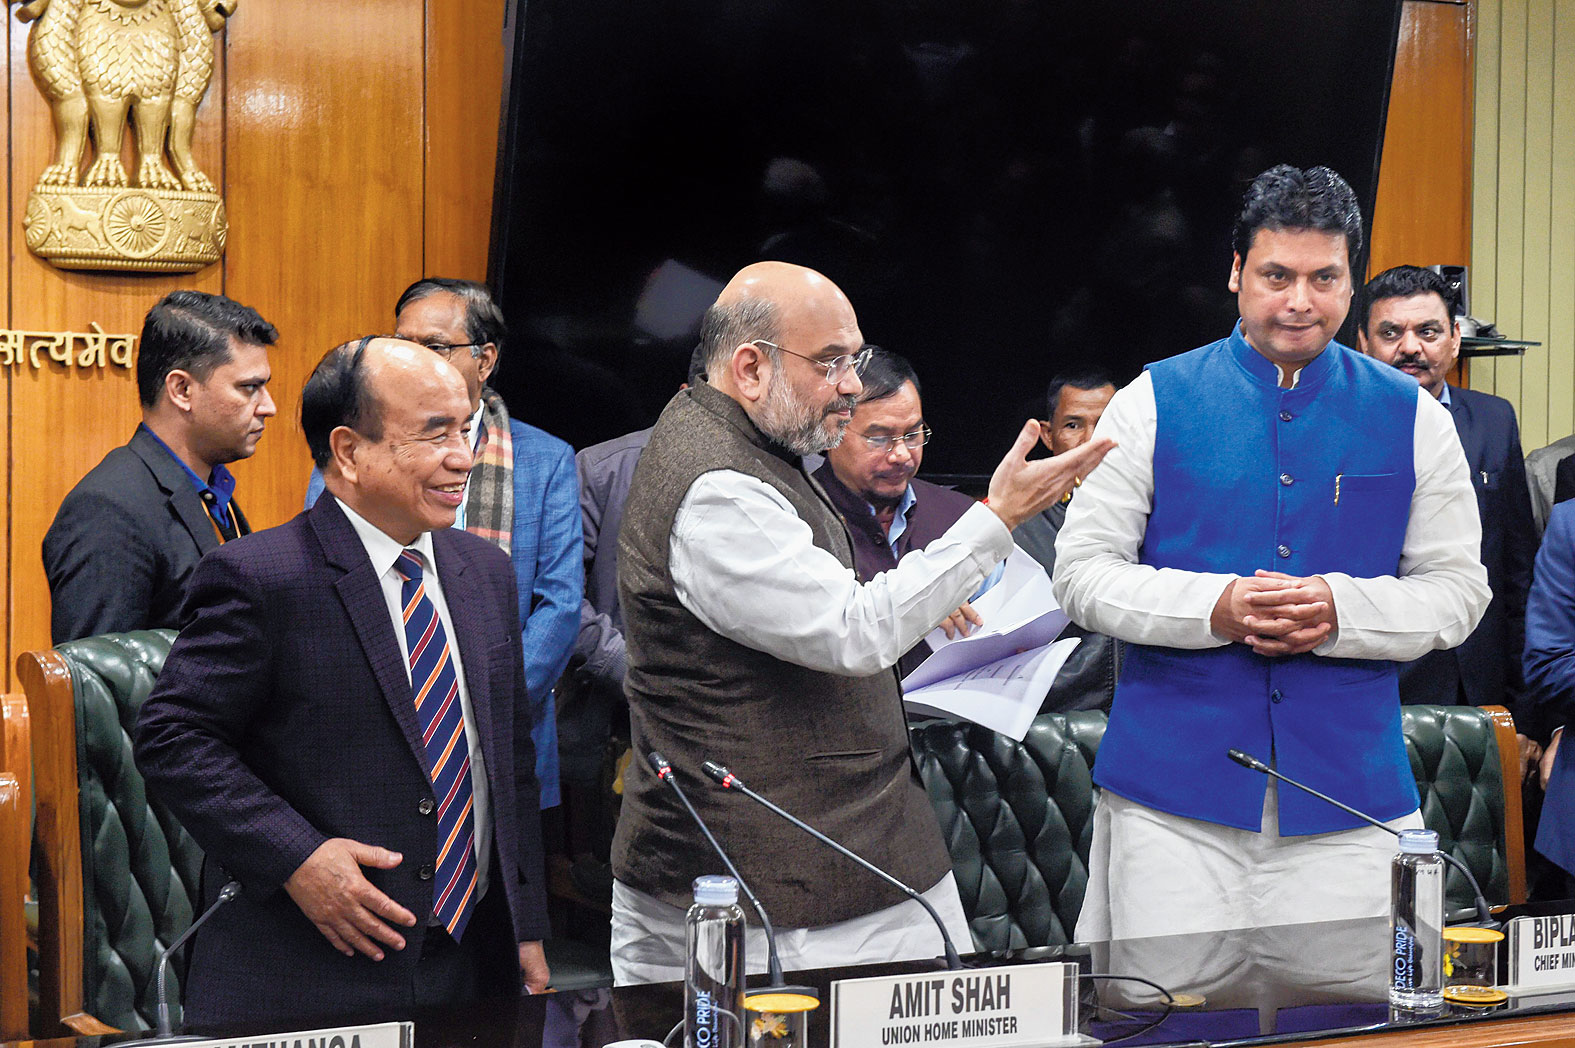 Mizoram chief minister Zoramthanga, Union home minister Amit Shah and Tripura chief minister Biplab Kumar Deb after signing of the agreement